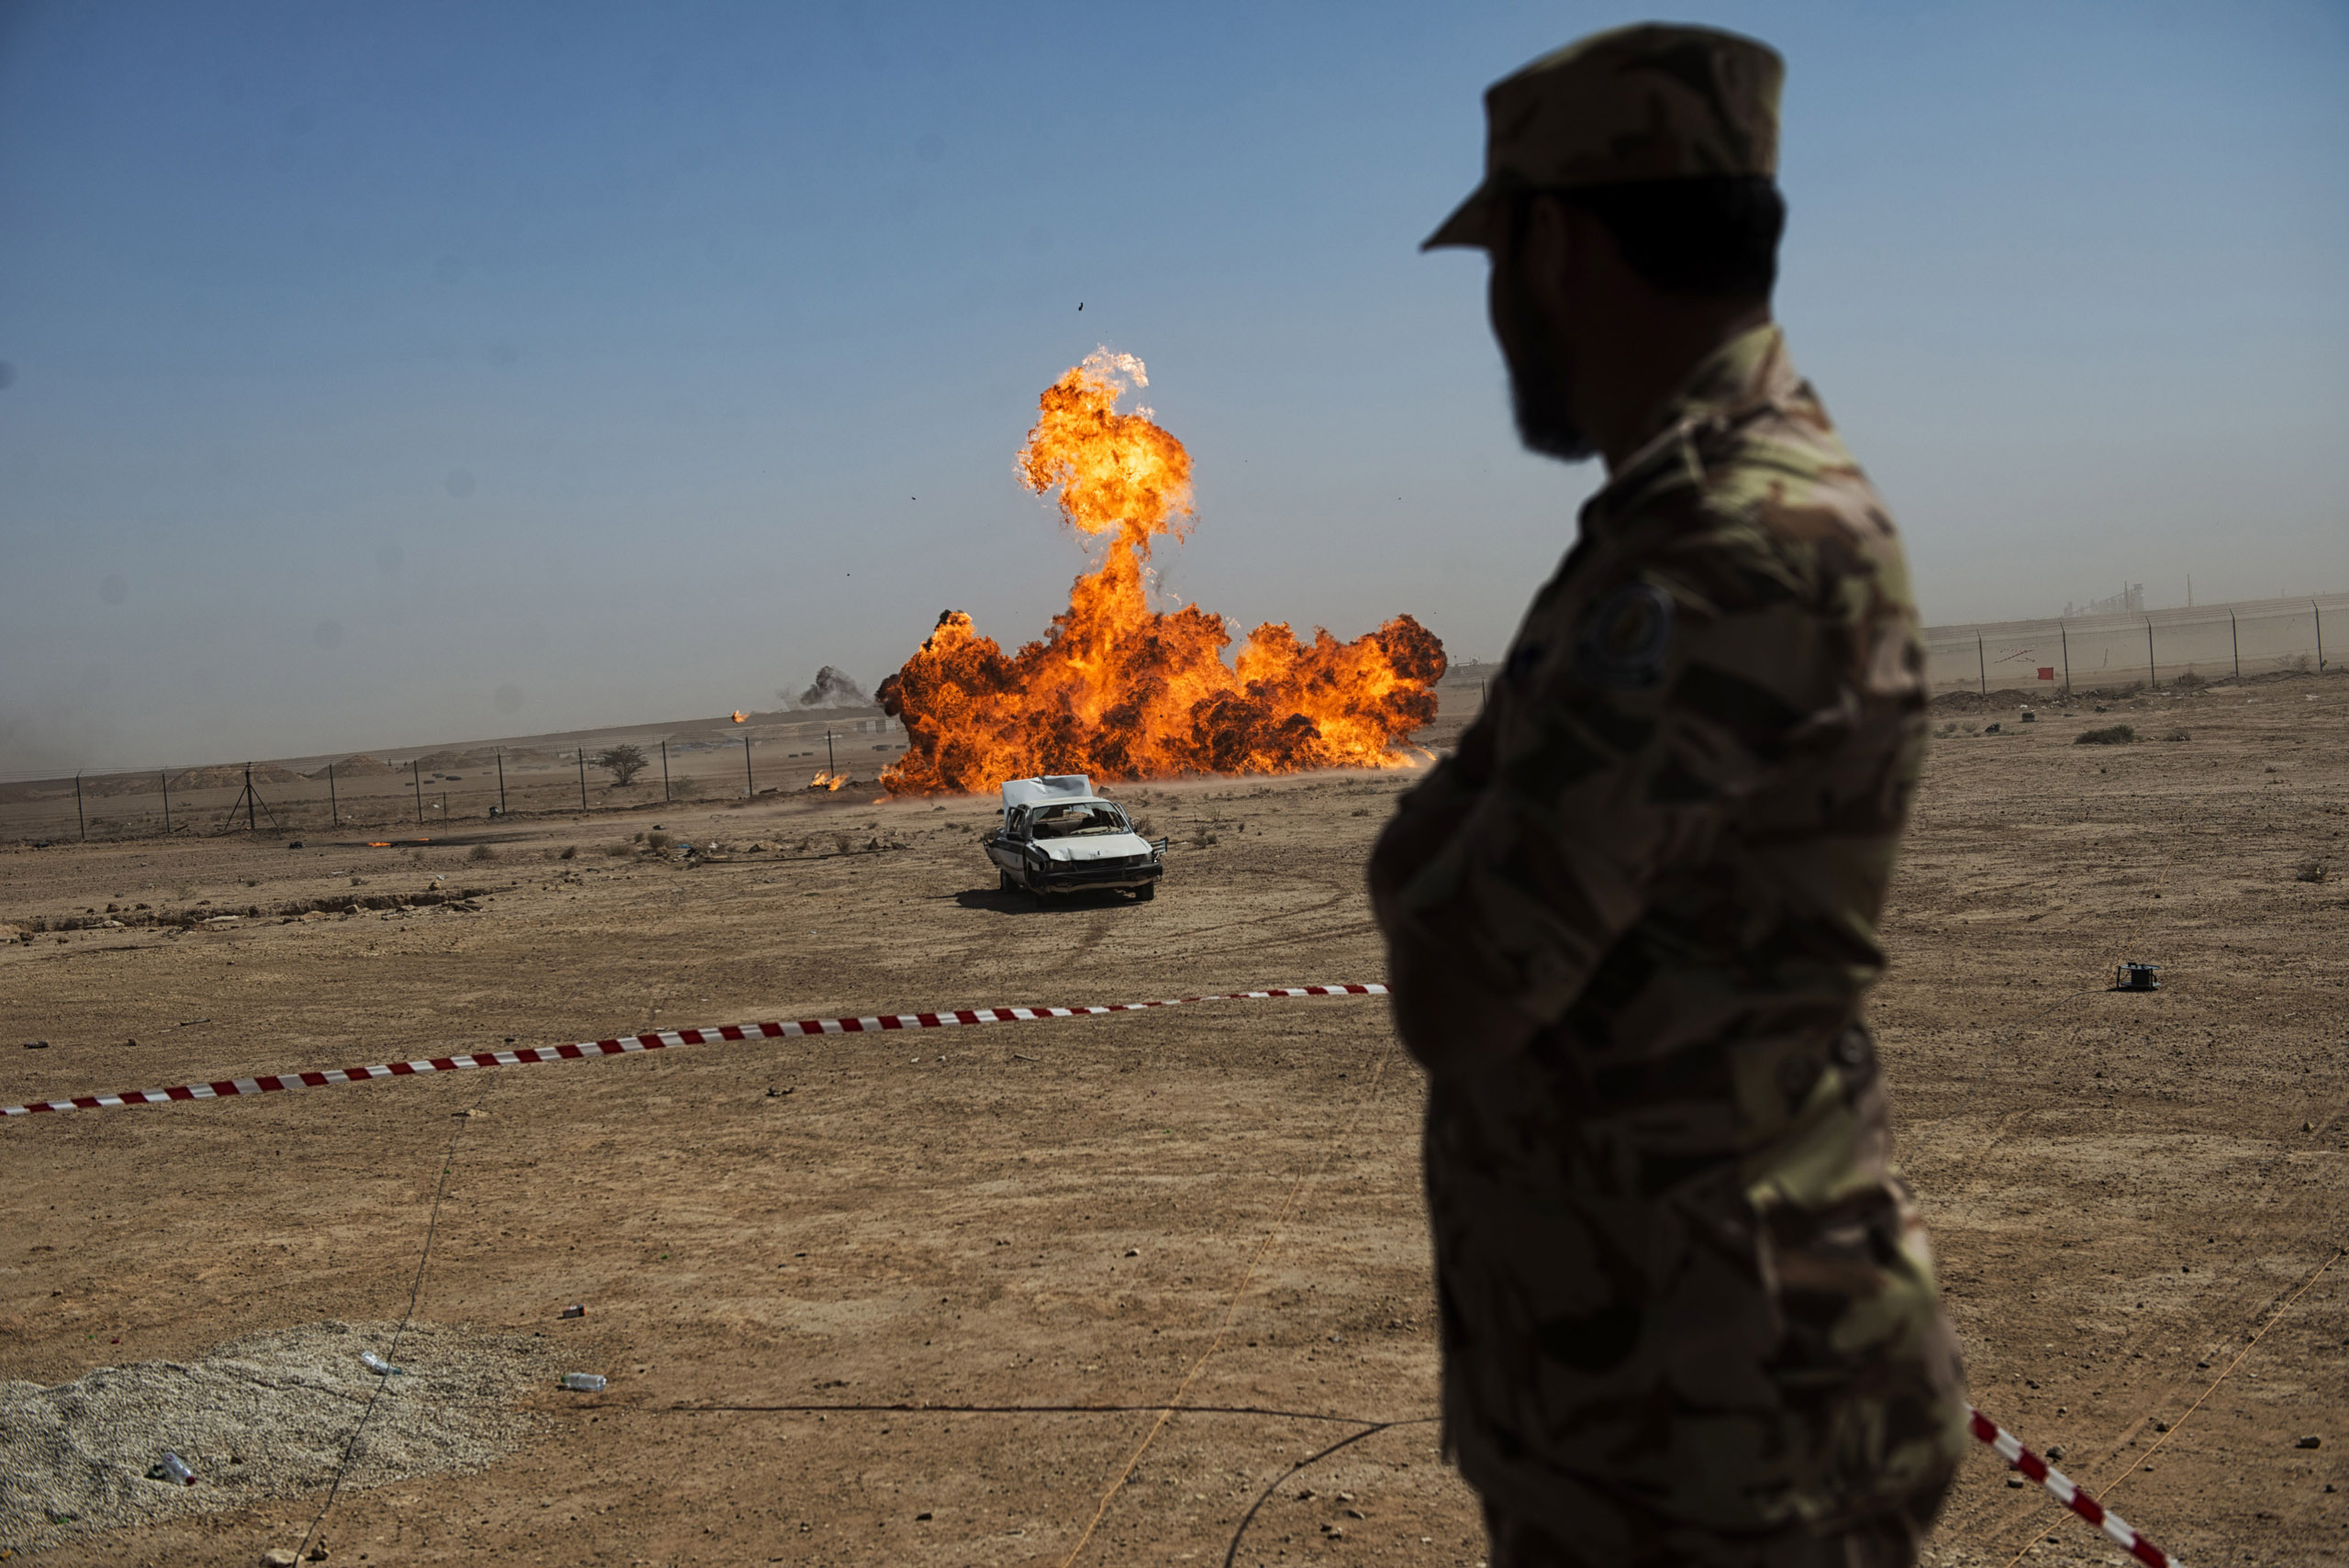 A troop with the Saudi Special Security Forces watches a remote detonation at the Counter-Terrorism Training School camp under the Ministry of Interior near Riyadh, Saudi Arabia, March 5, 2013.